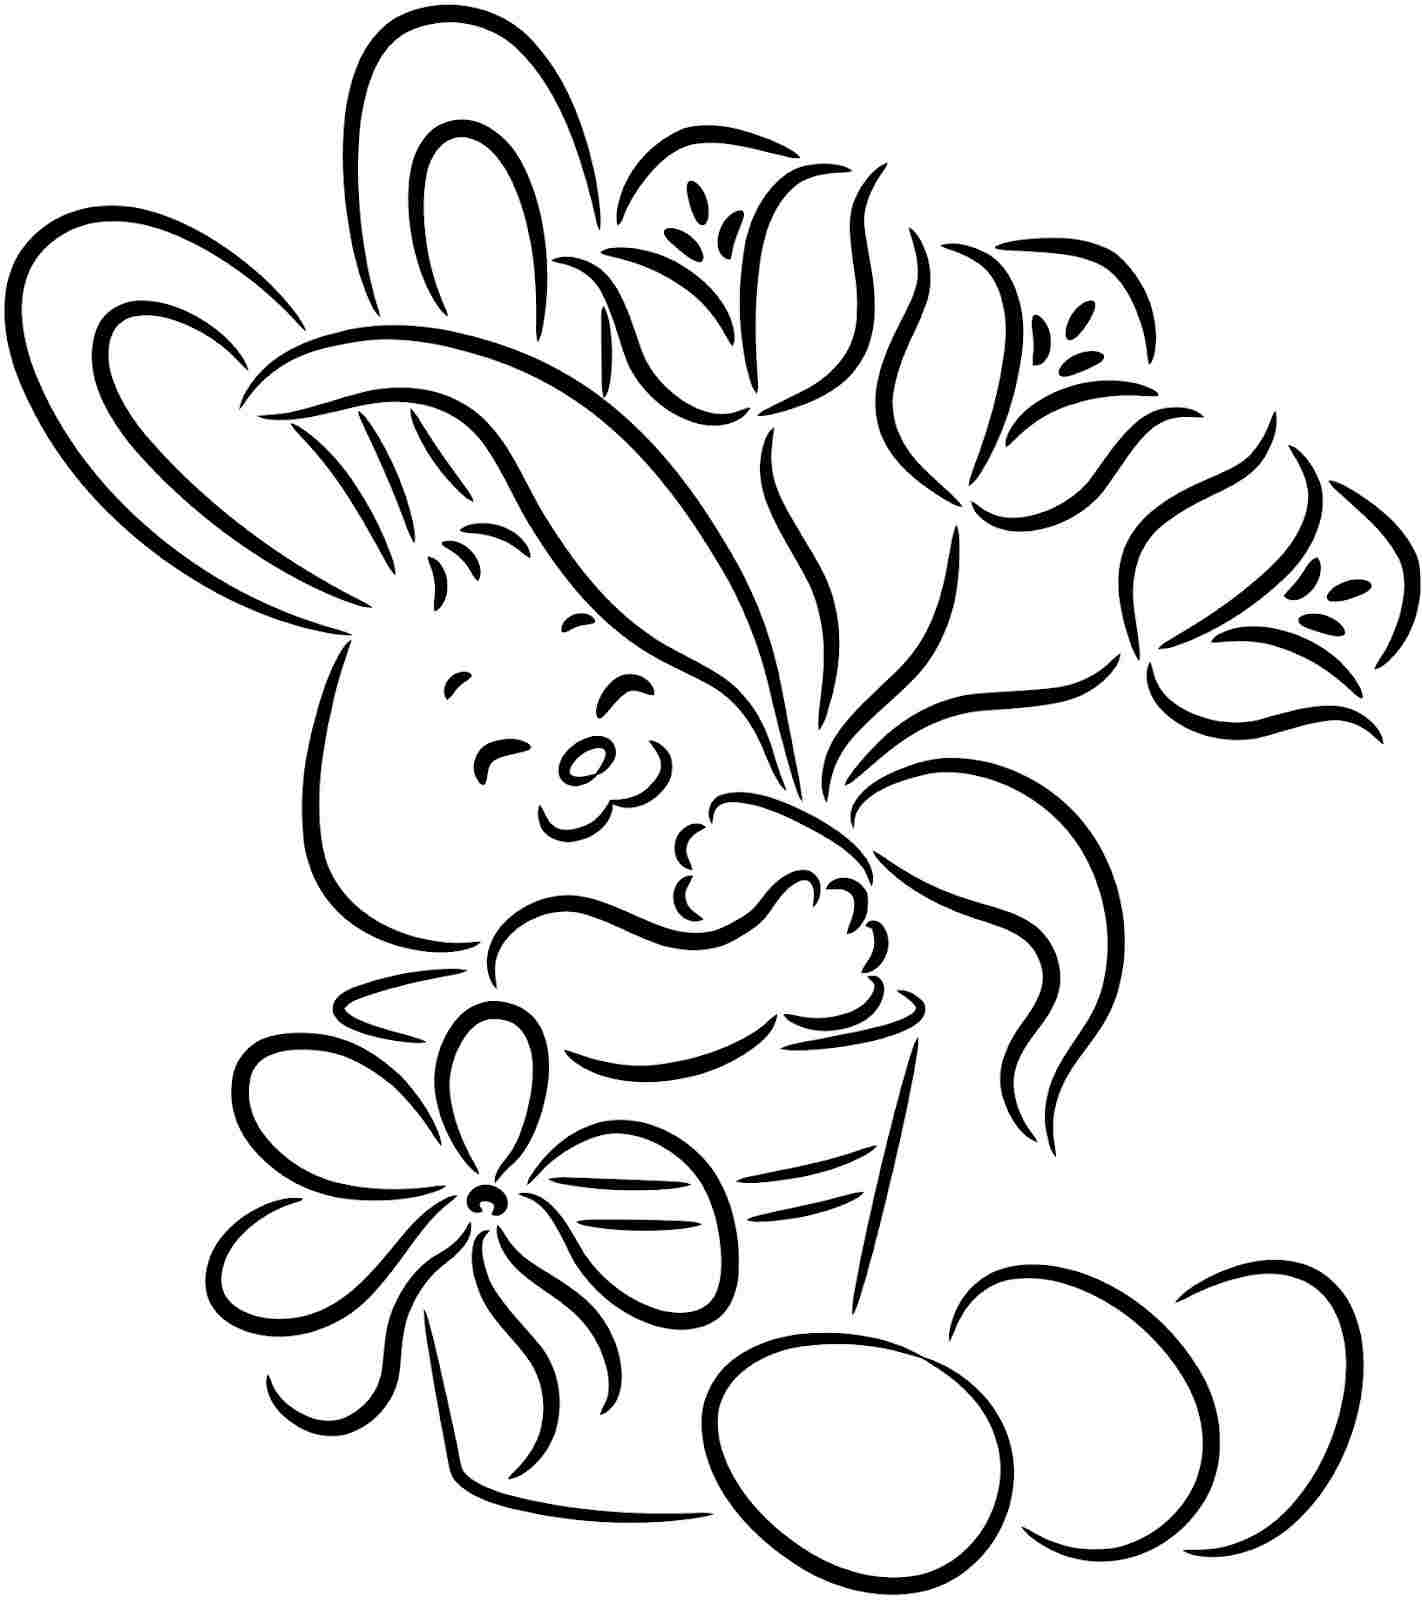 1422x1600 Easy Bunny Drawings For Kids Easter Colouring Pages Id 28875